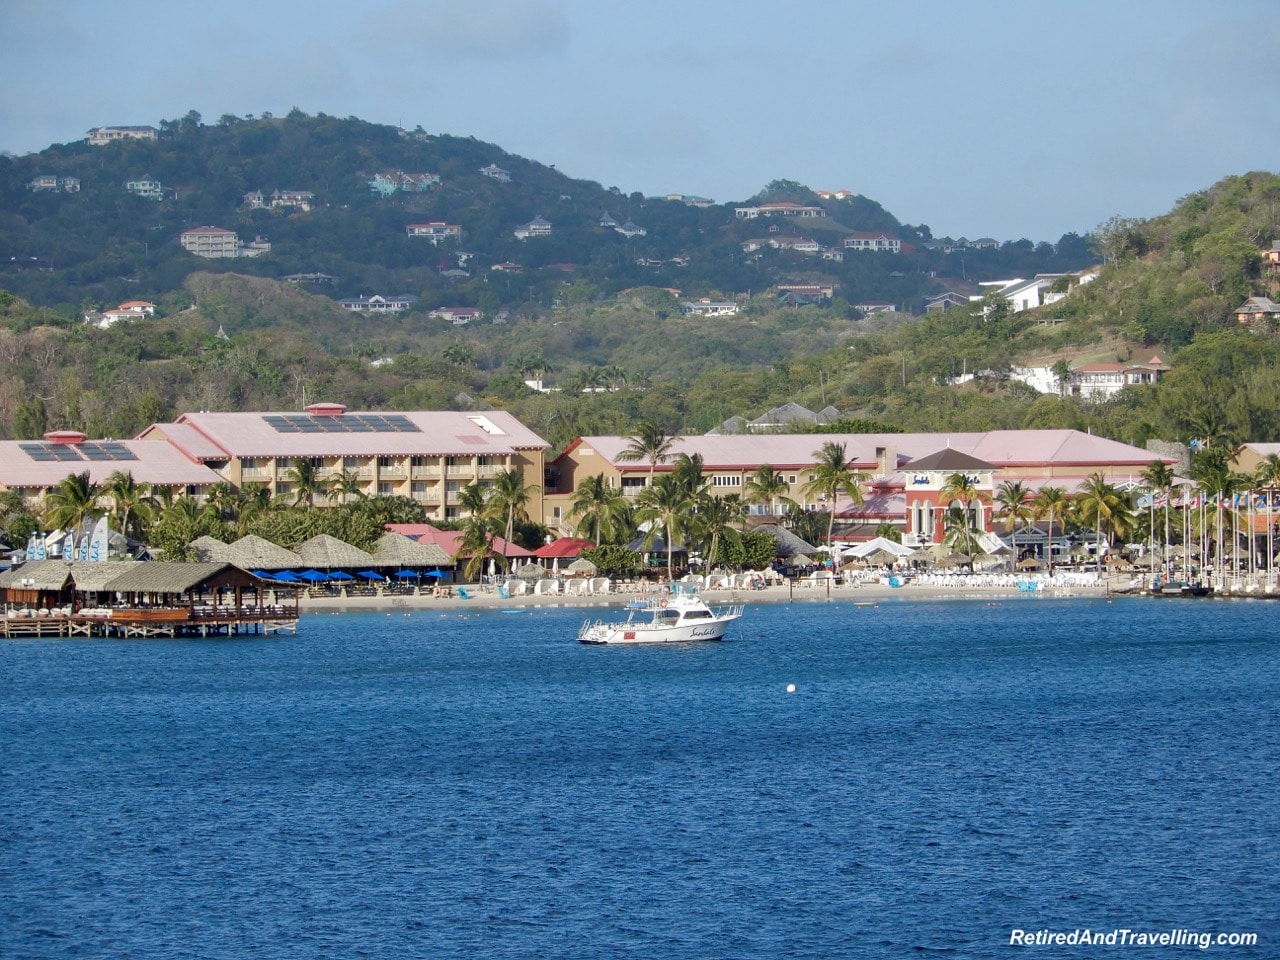 St Lucia Sandals La Toc - Cruising With Windstar In The Caribbean.jpg